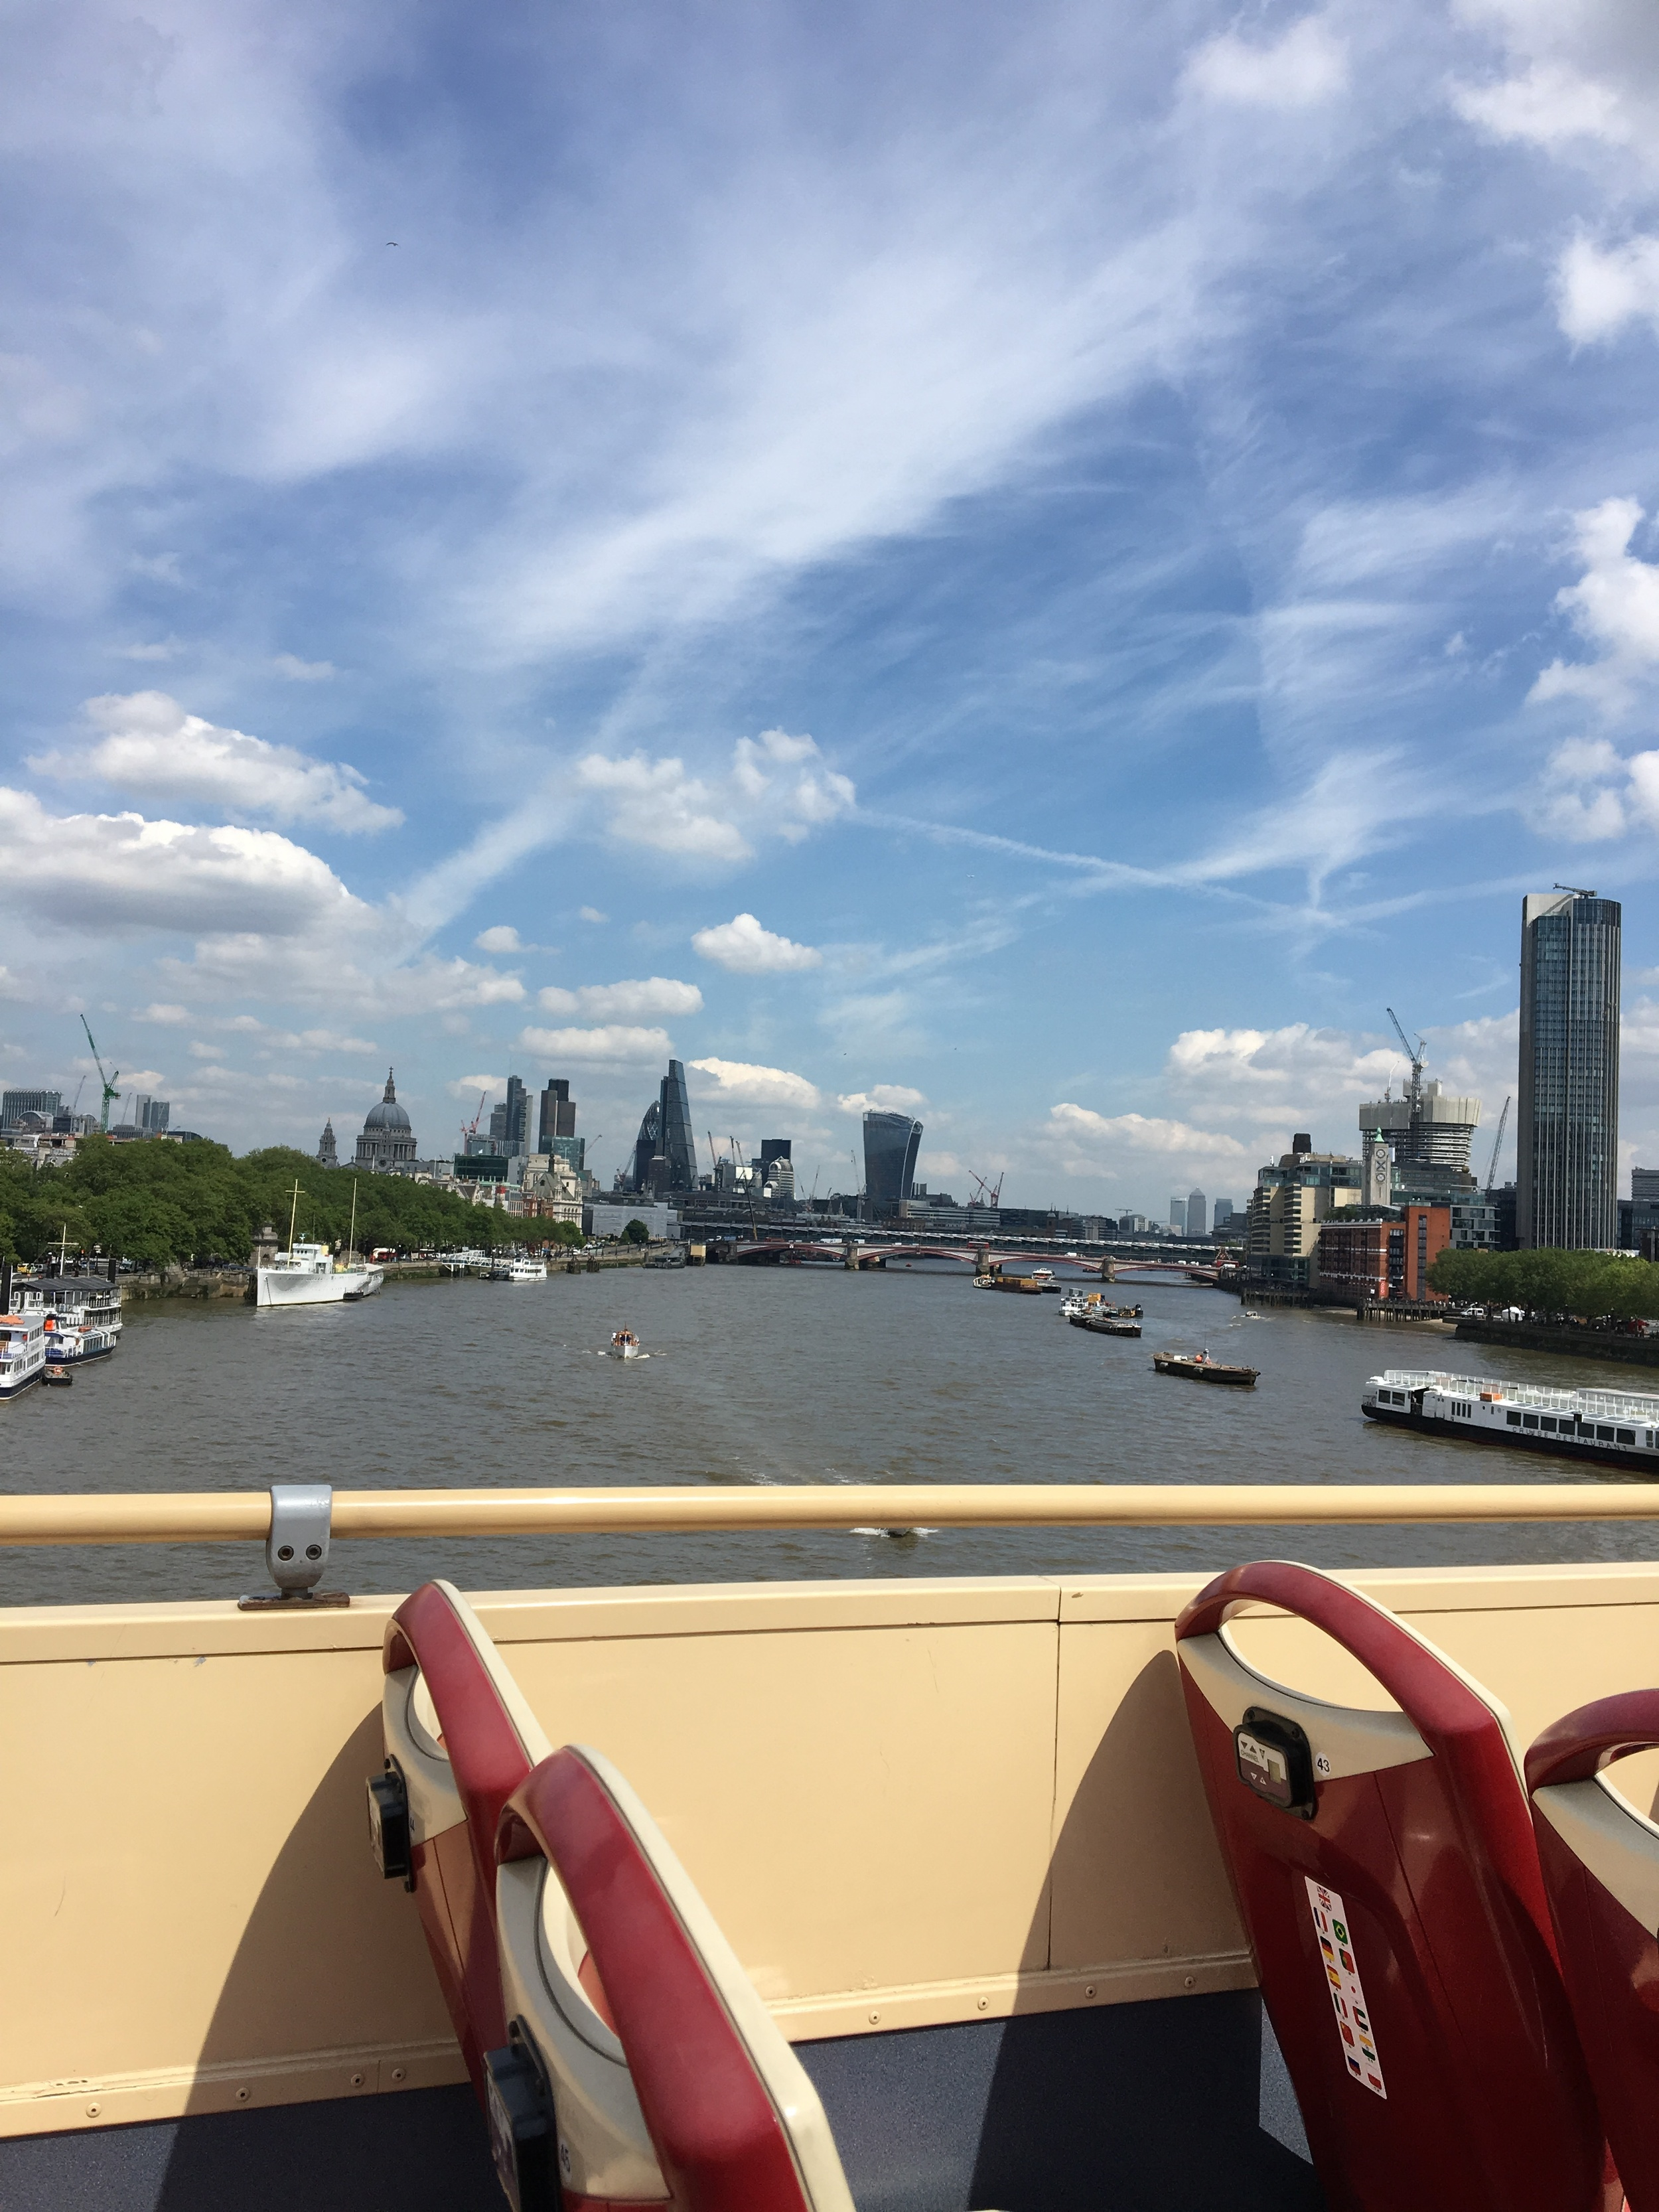 The open topped HOHO buses allow a clear view of the Thames.